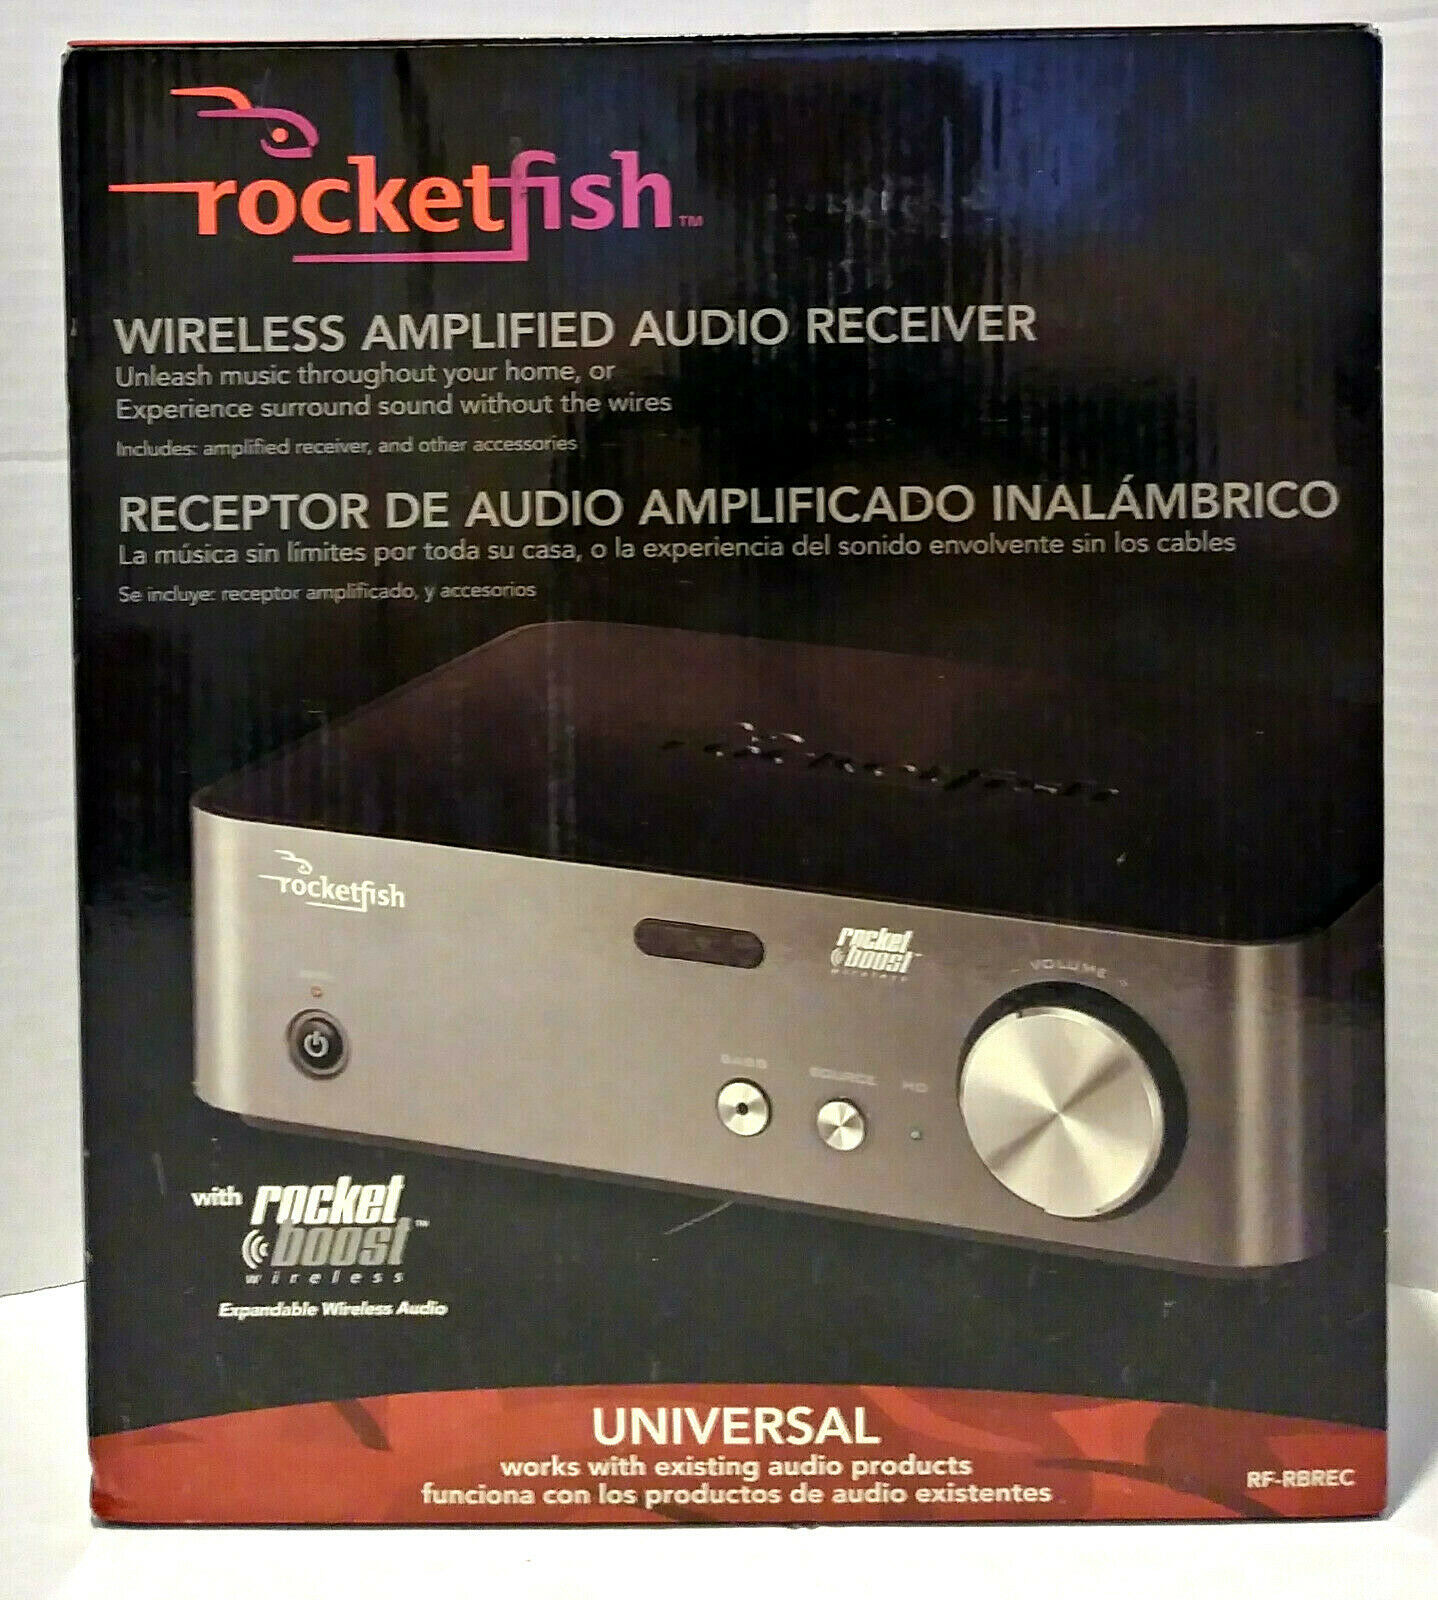 Primary image for Rocketfish Wireless Amplified Audio Receiver RF-RBREC